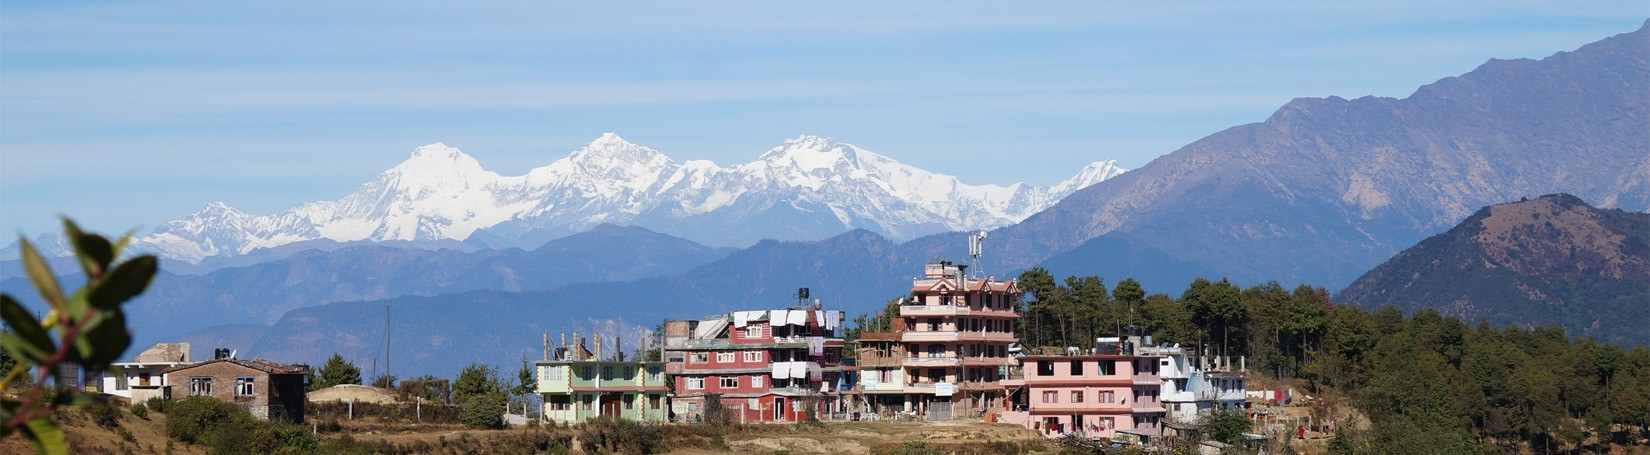 View from Chisapani - Hiking Around Kathmandu Valley